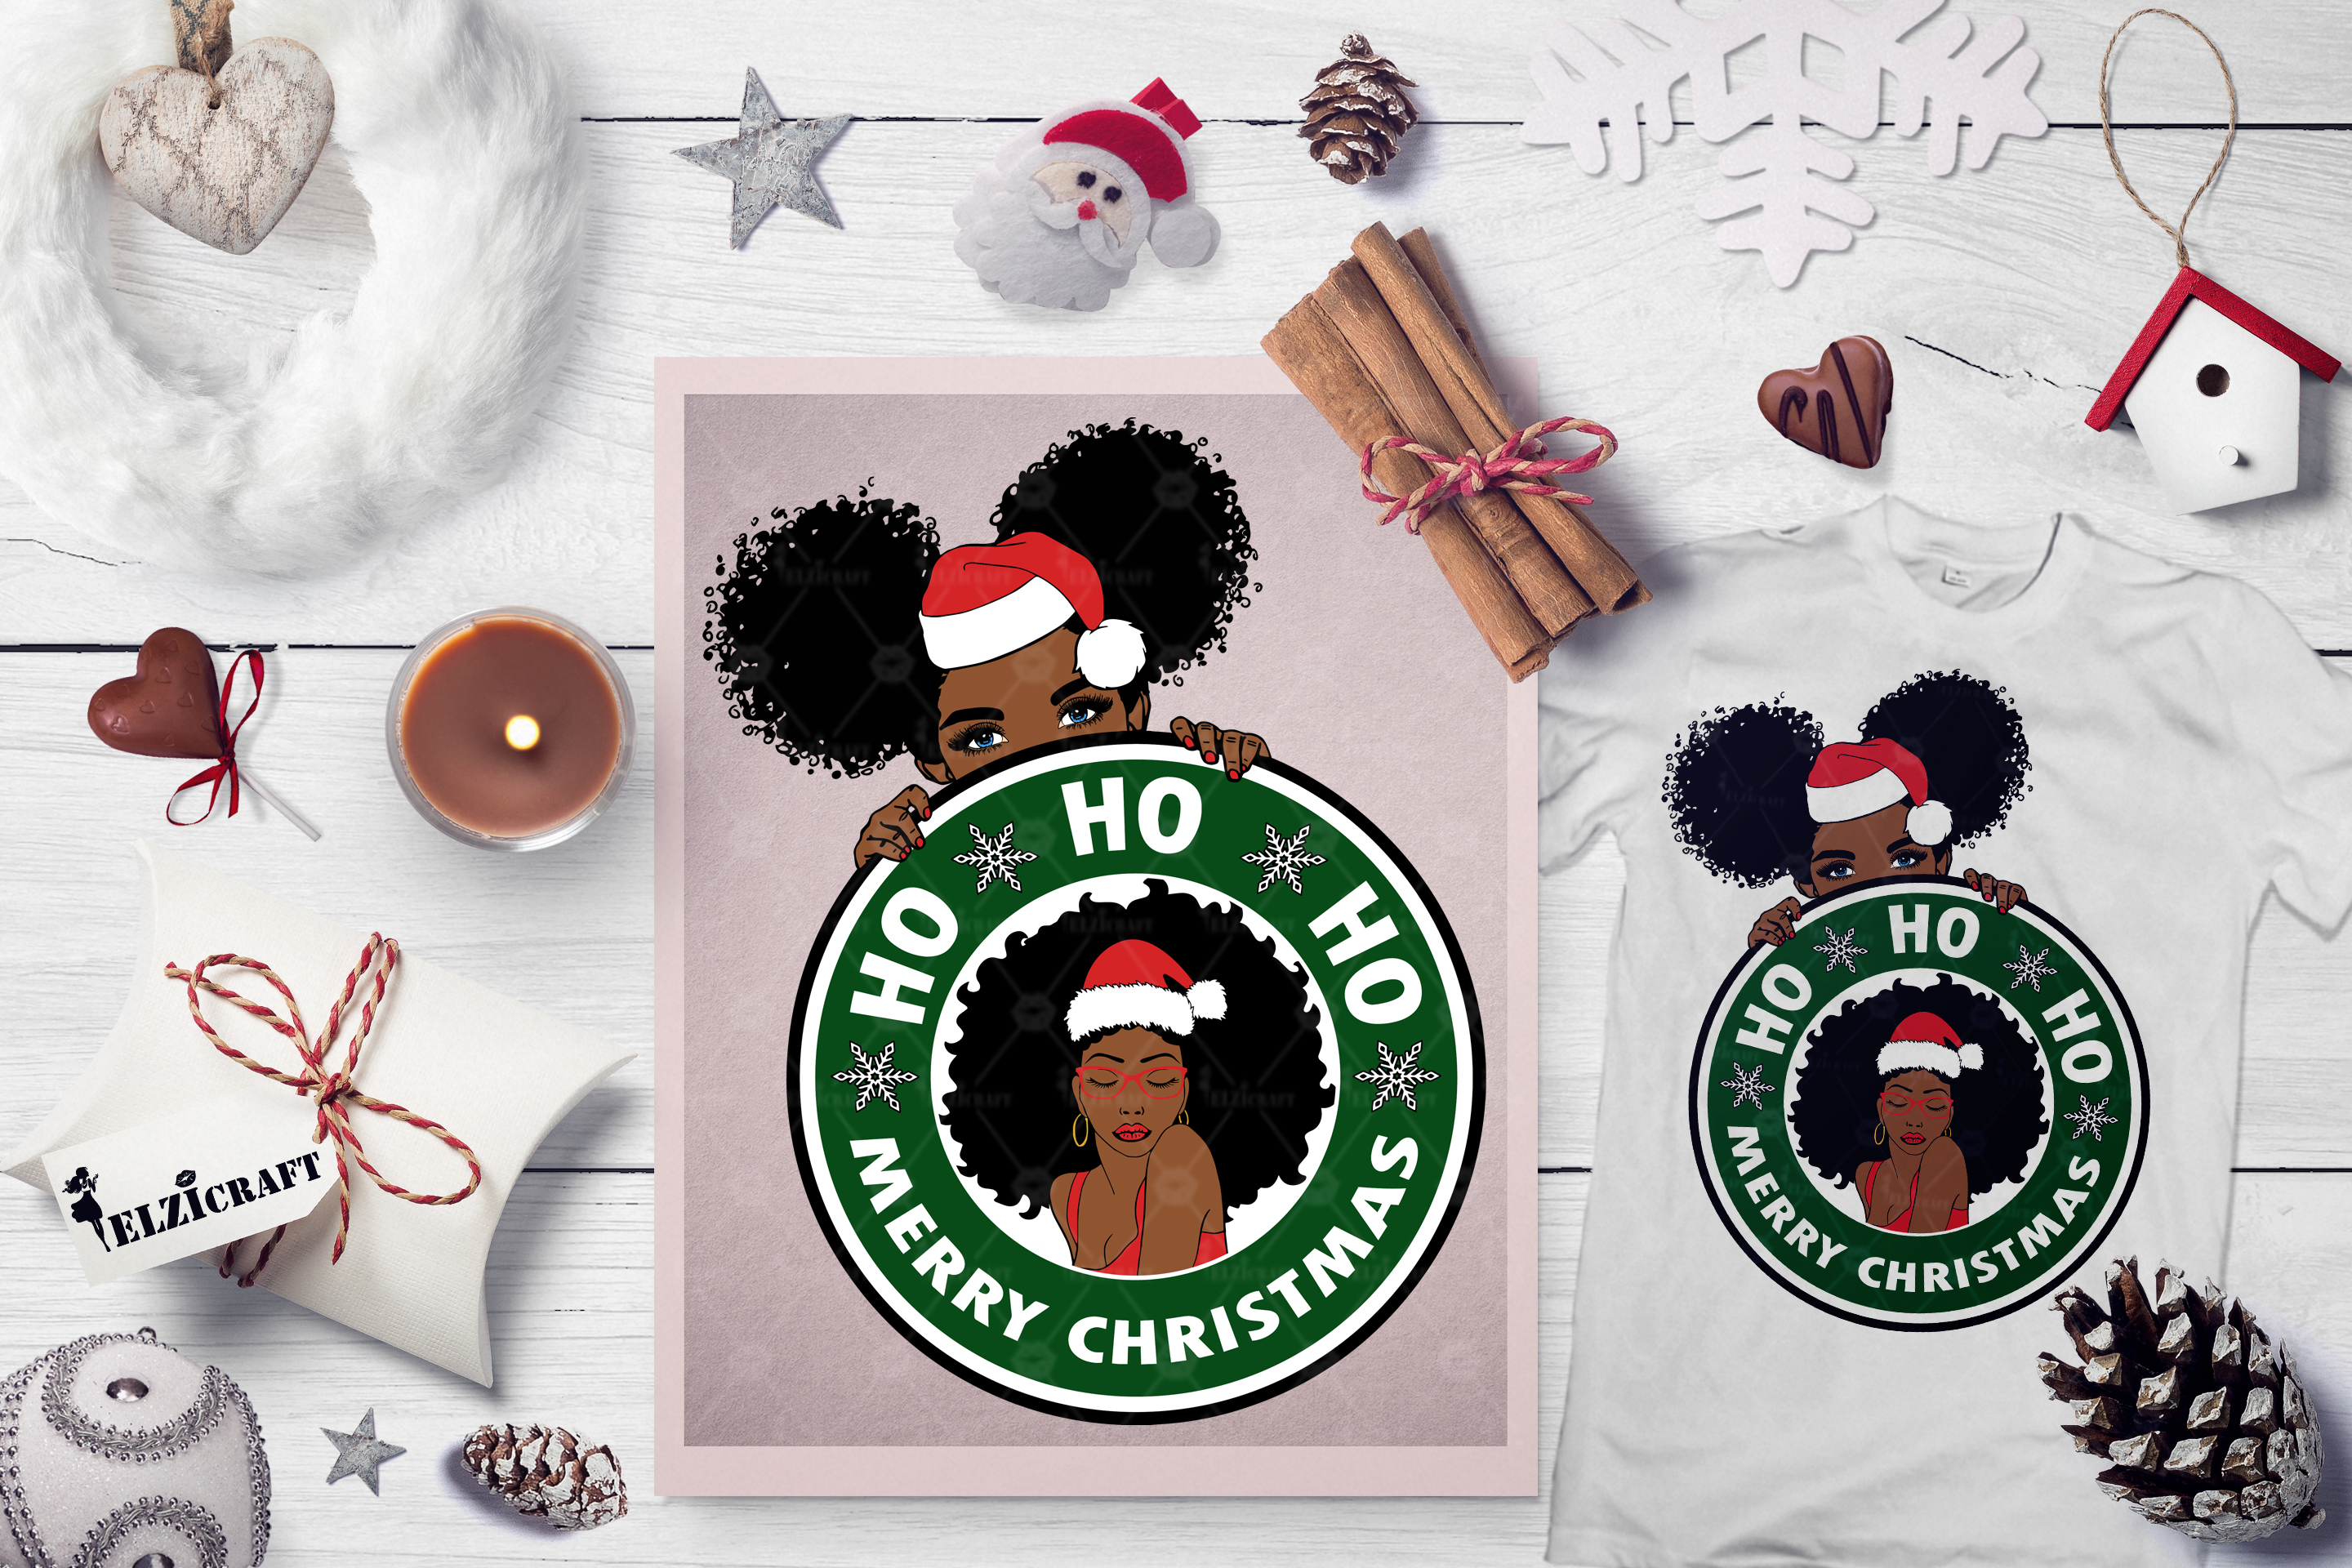 Download Free Christmas Afro Woman And Girl Peeking Graphic By Elzicraft SVG Cut Files